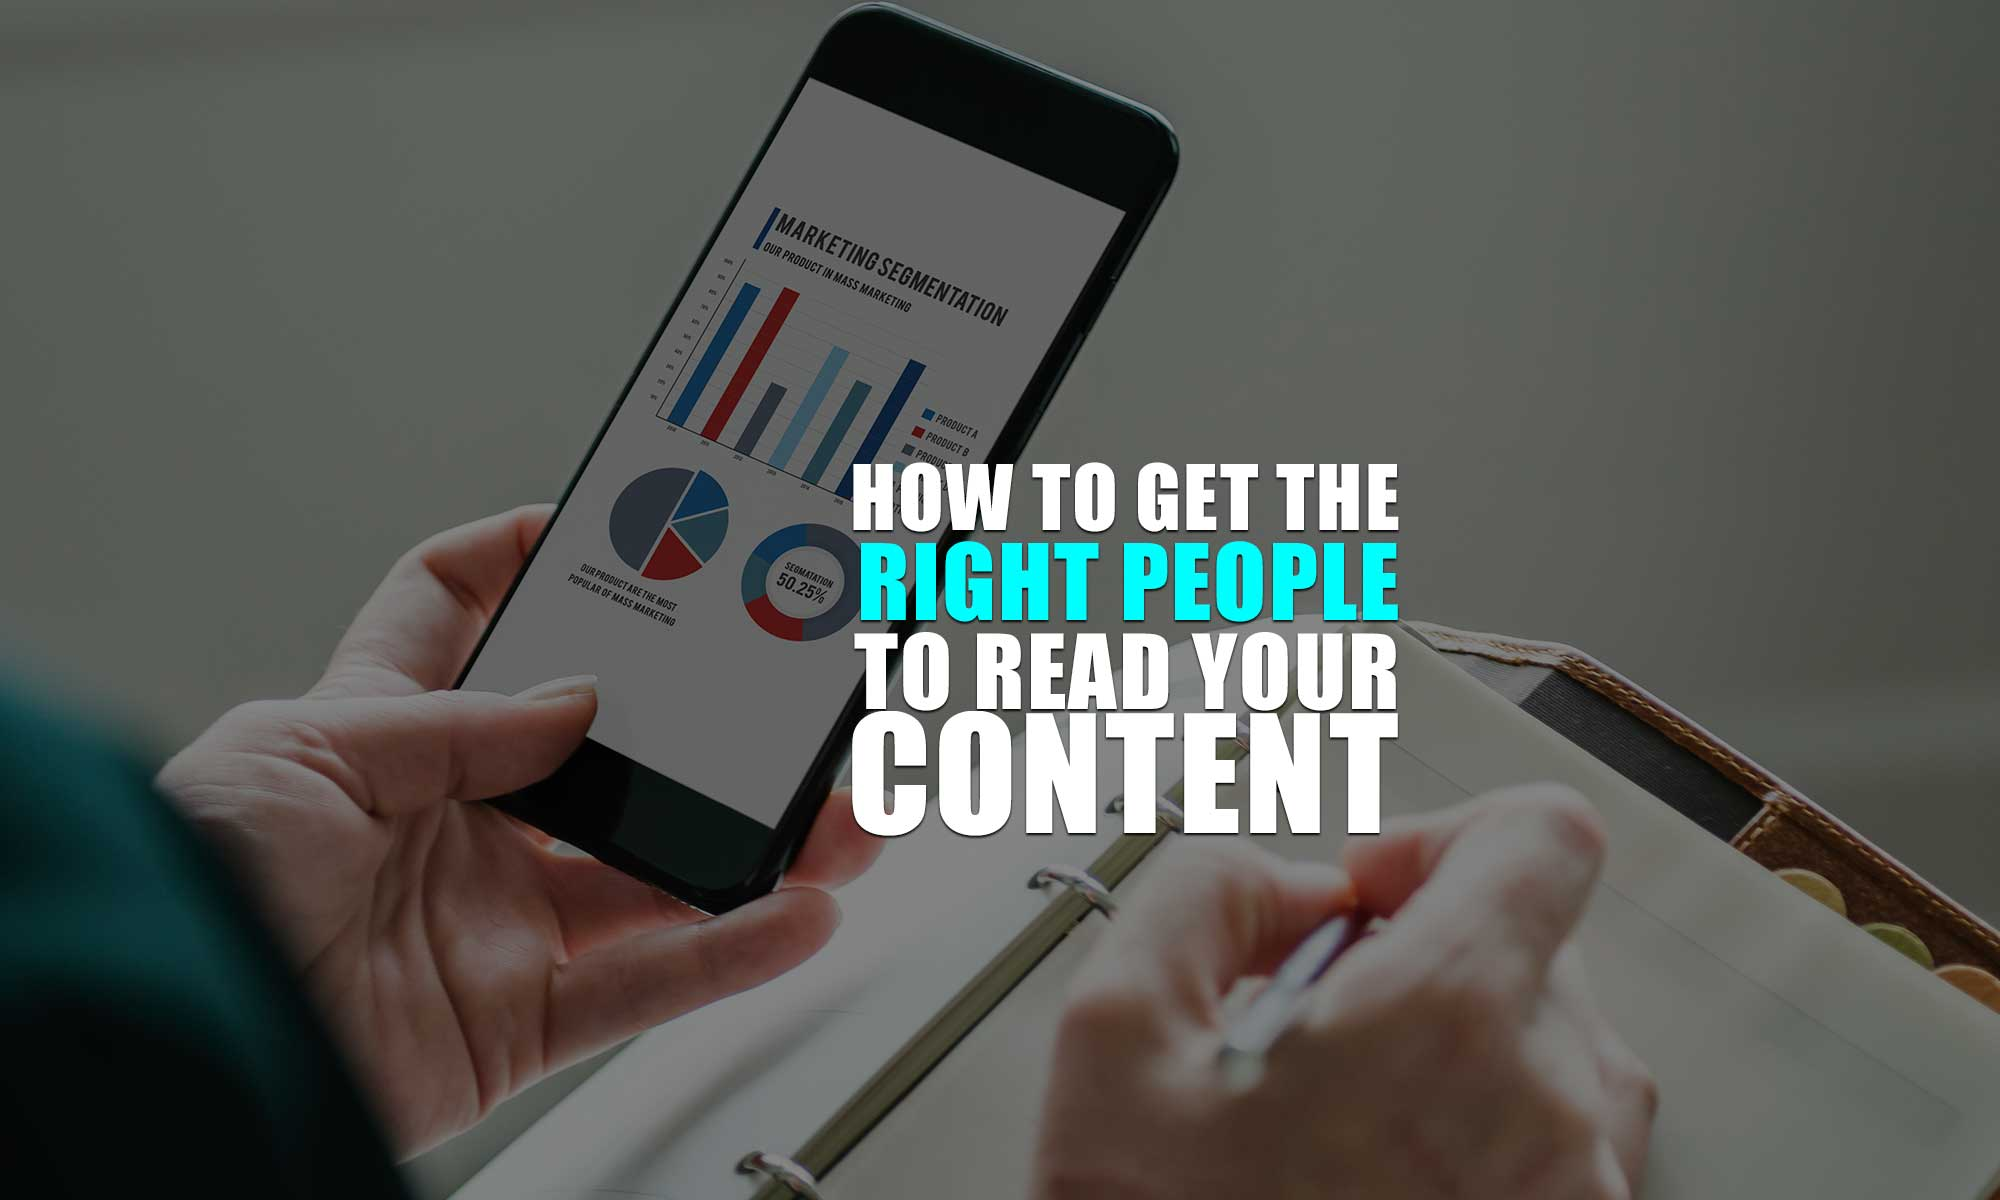 How to get the right people to read your content online